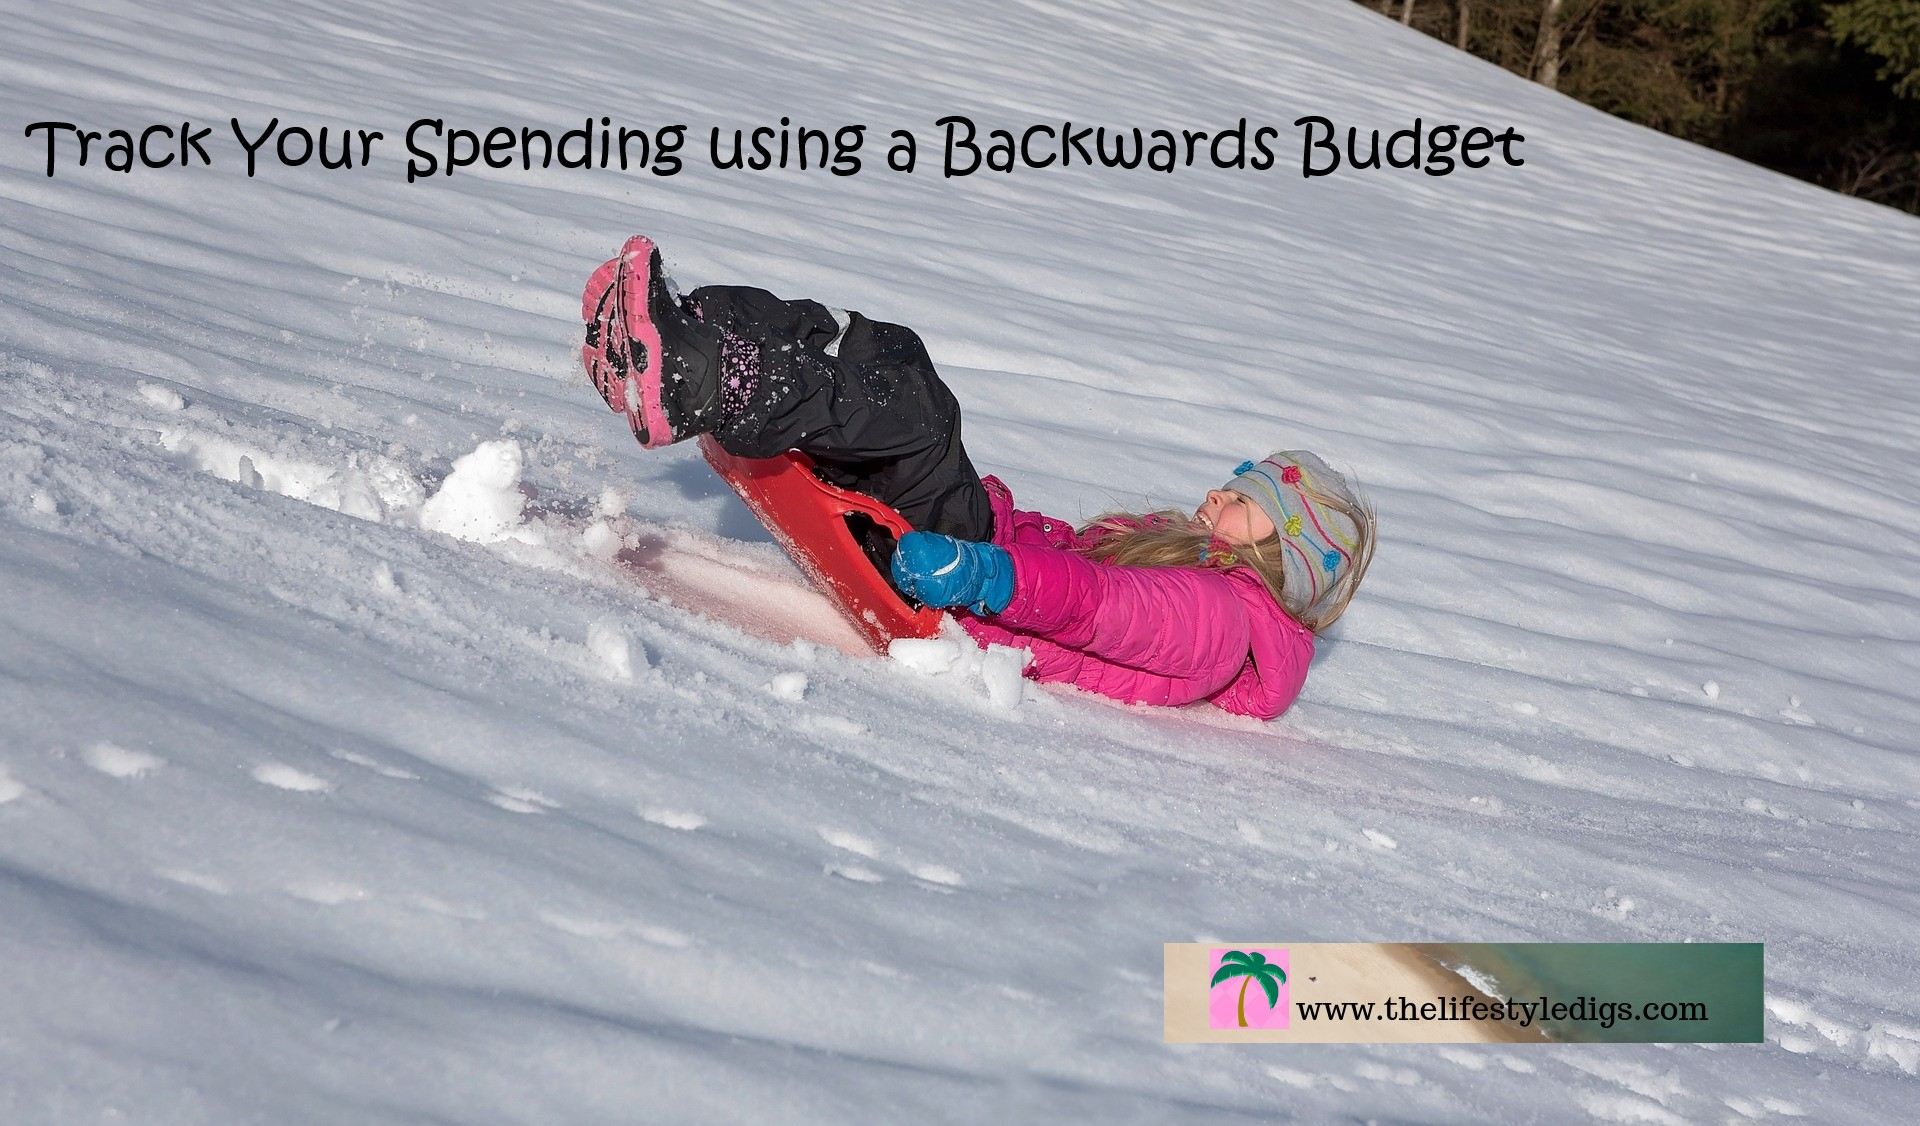 Track Your Spending using a Backwards Budget